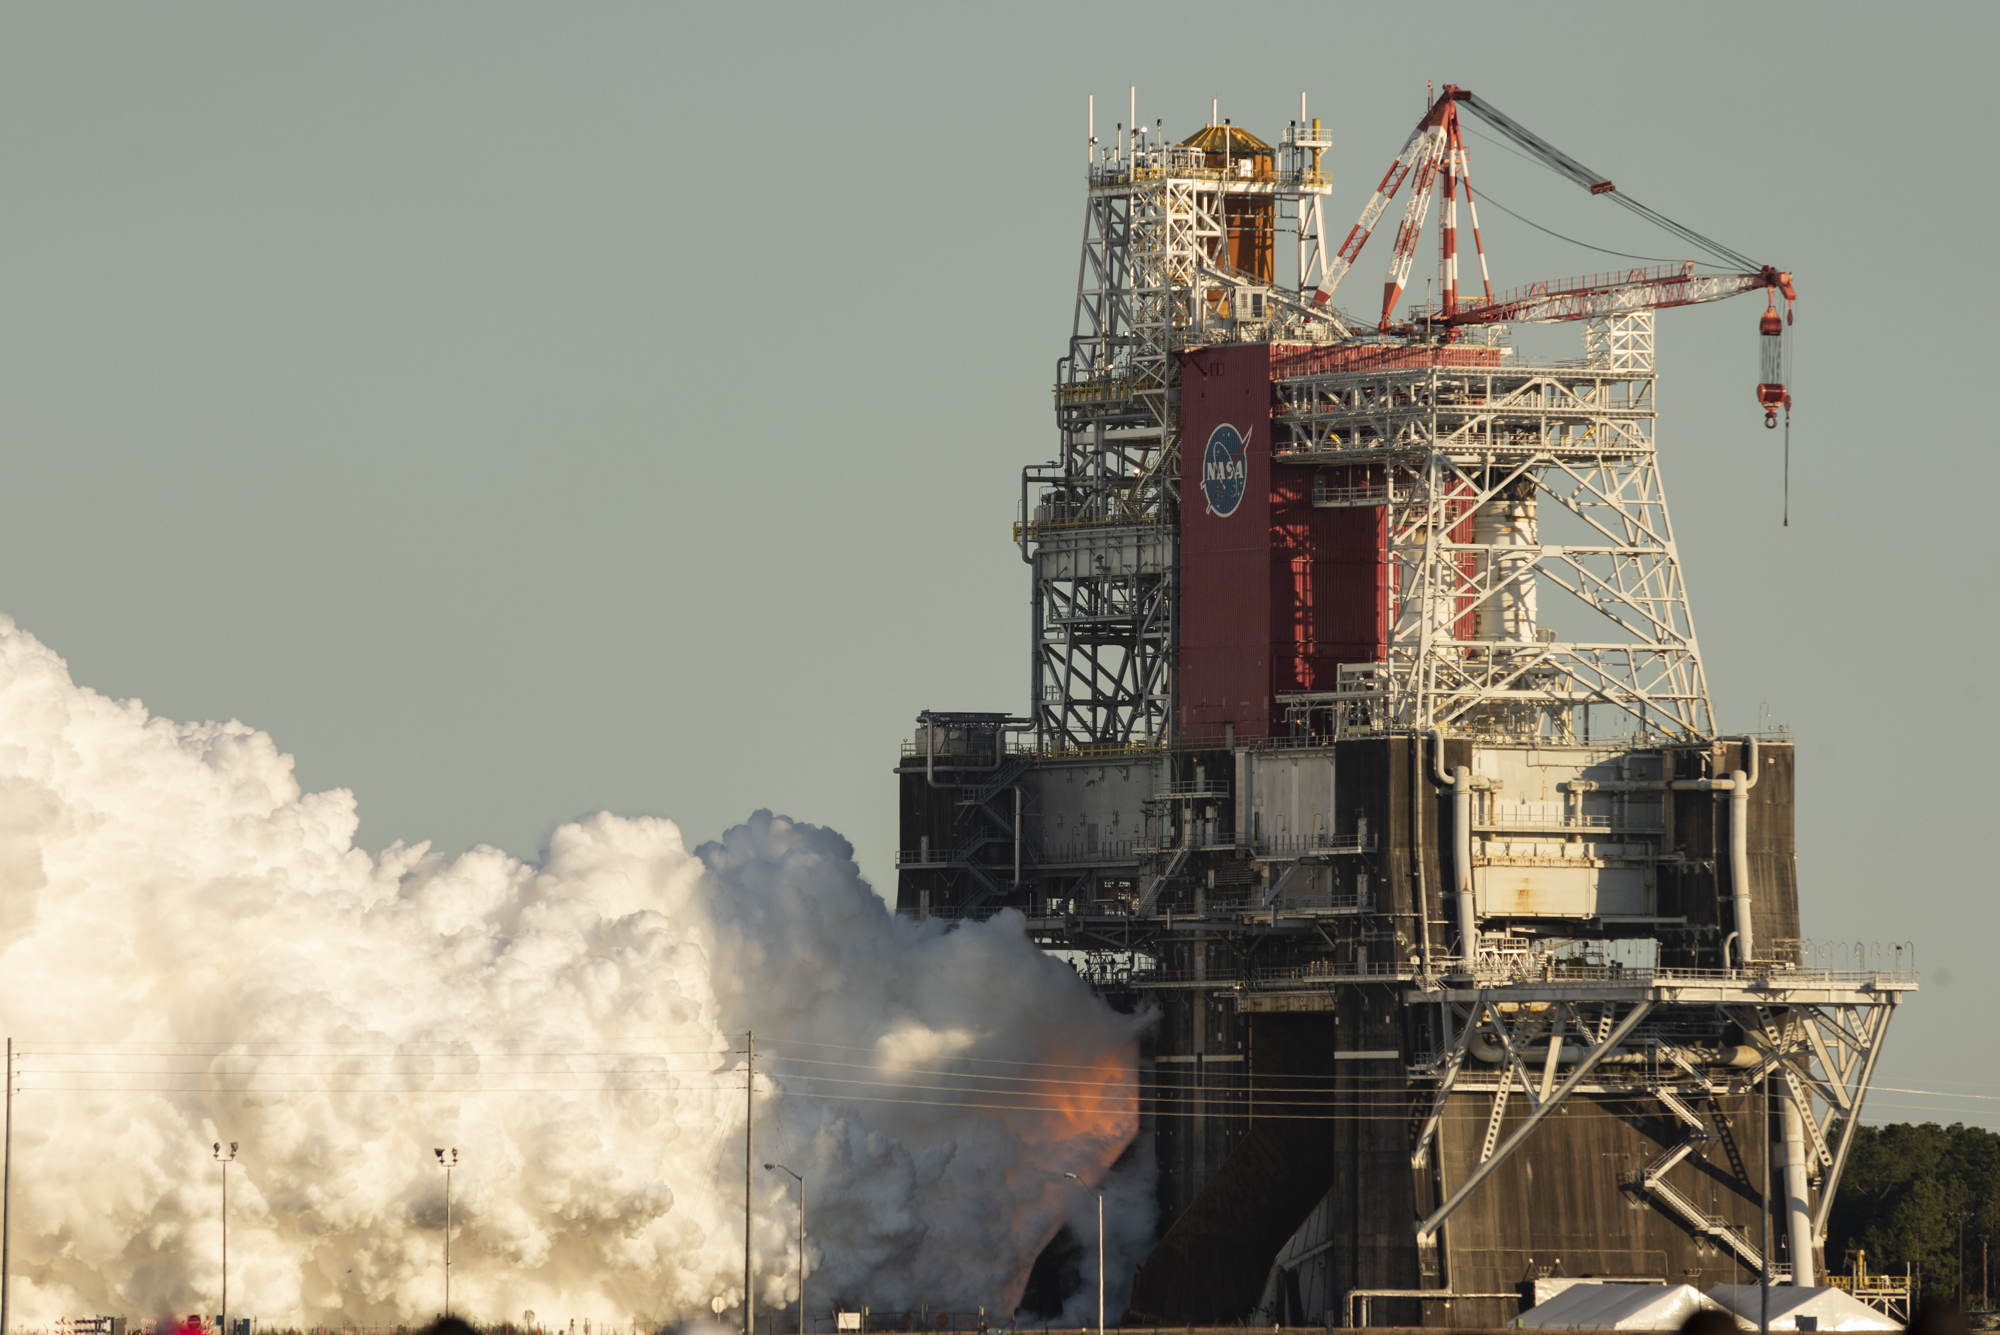 Critical engine test for NASA's Space Launch System megarocket shuts down earlier than planned